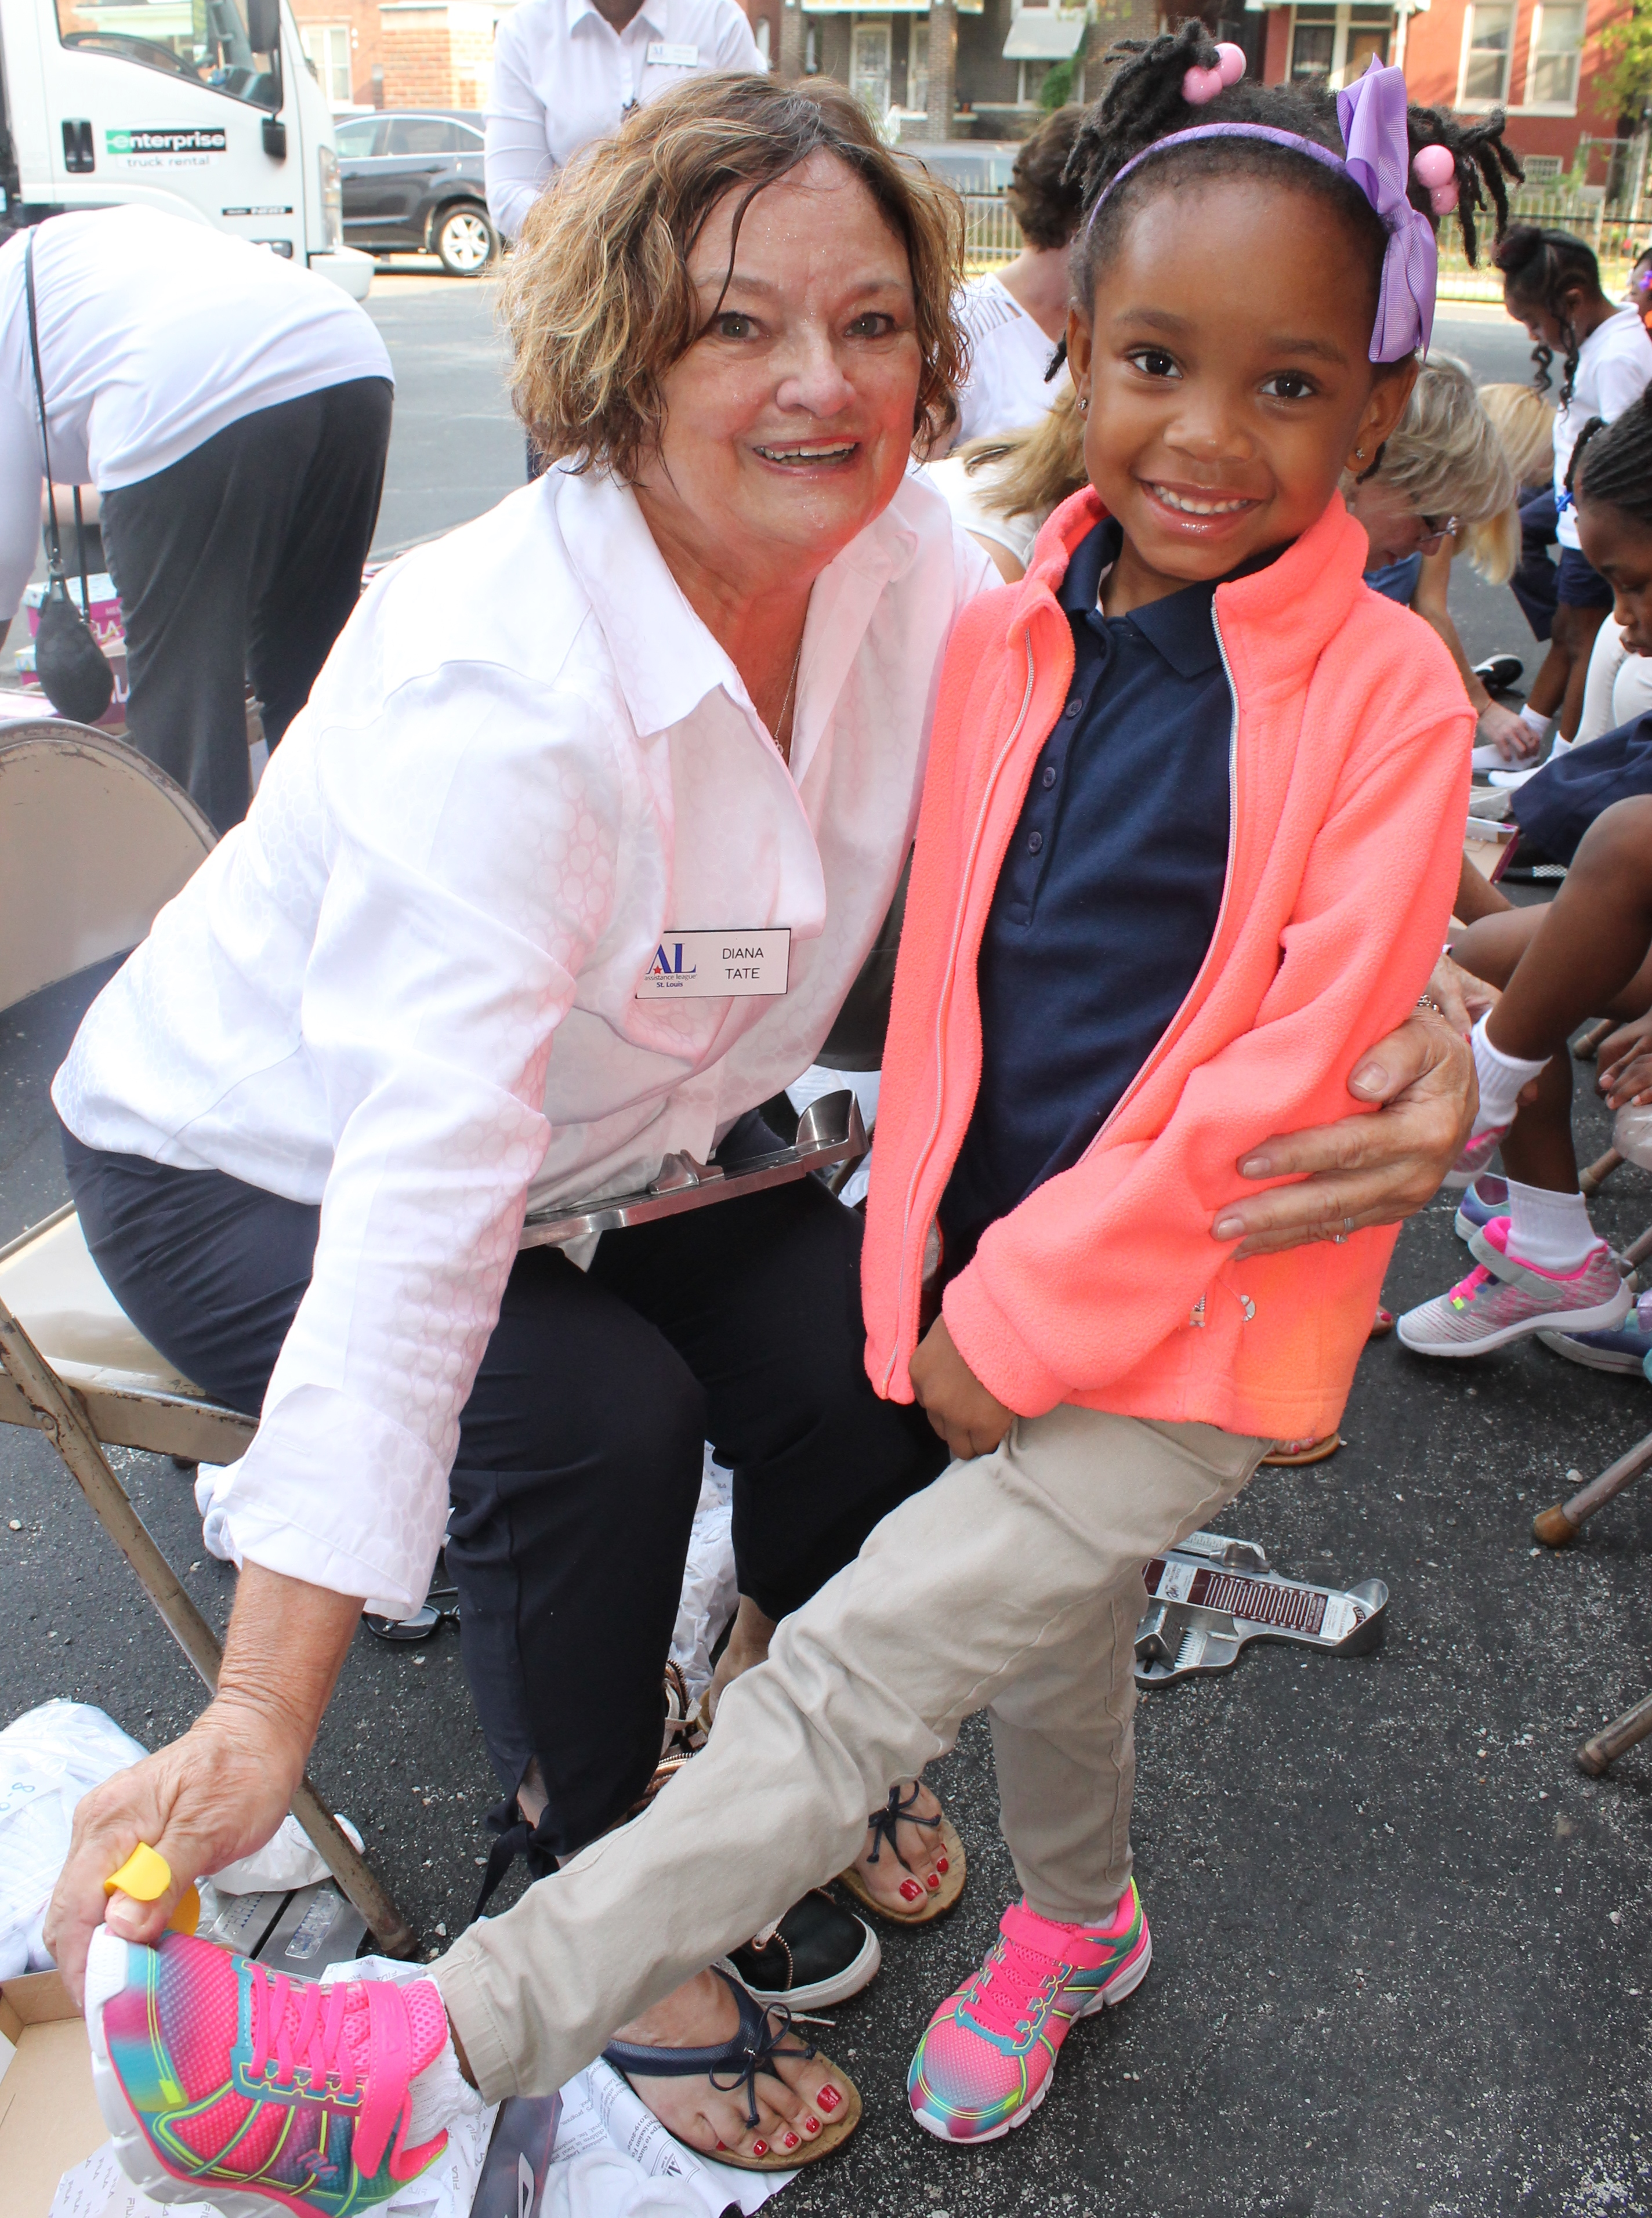 9 10 19 STEPS Diana Tate of Ballwin with Hamilton School kindergartener showing off her shoes